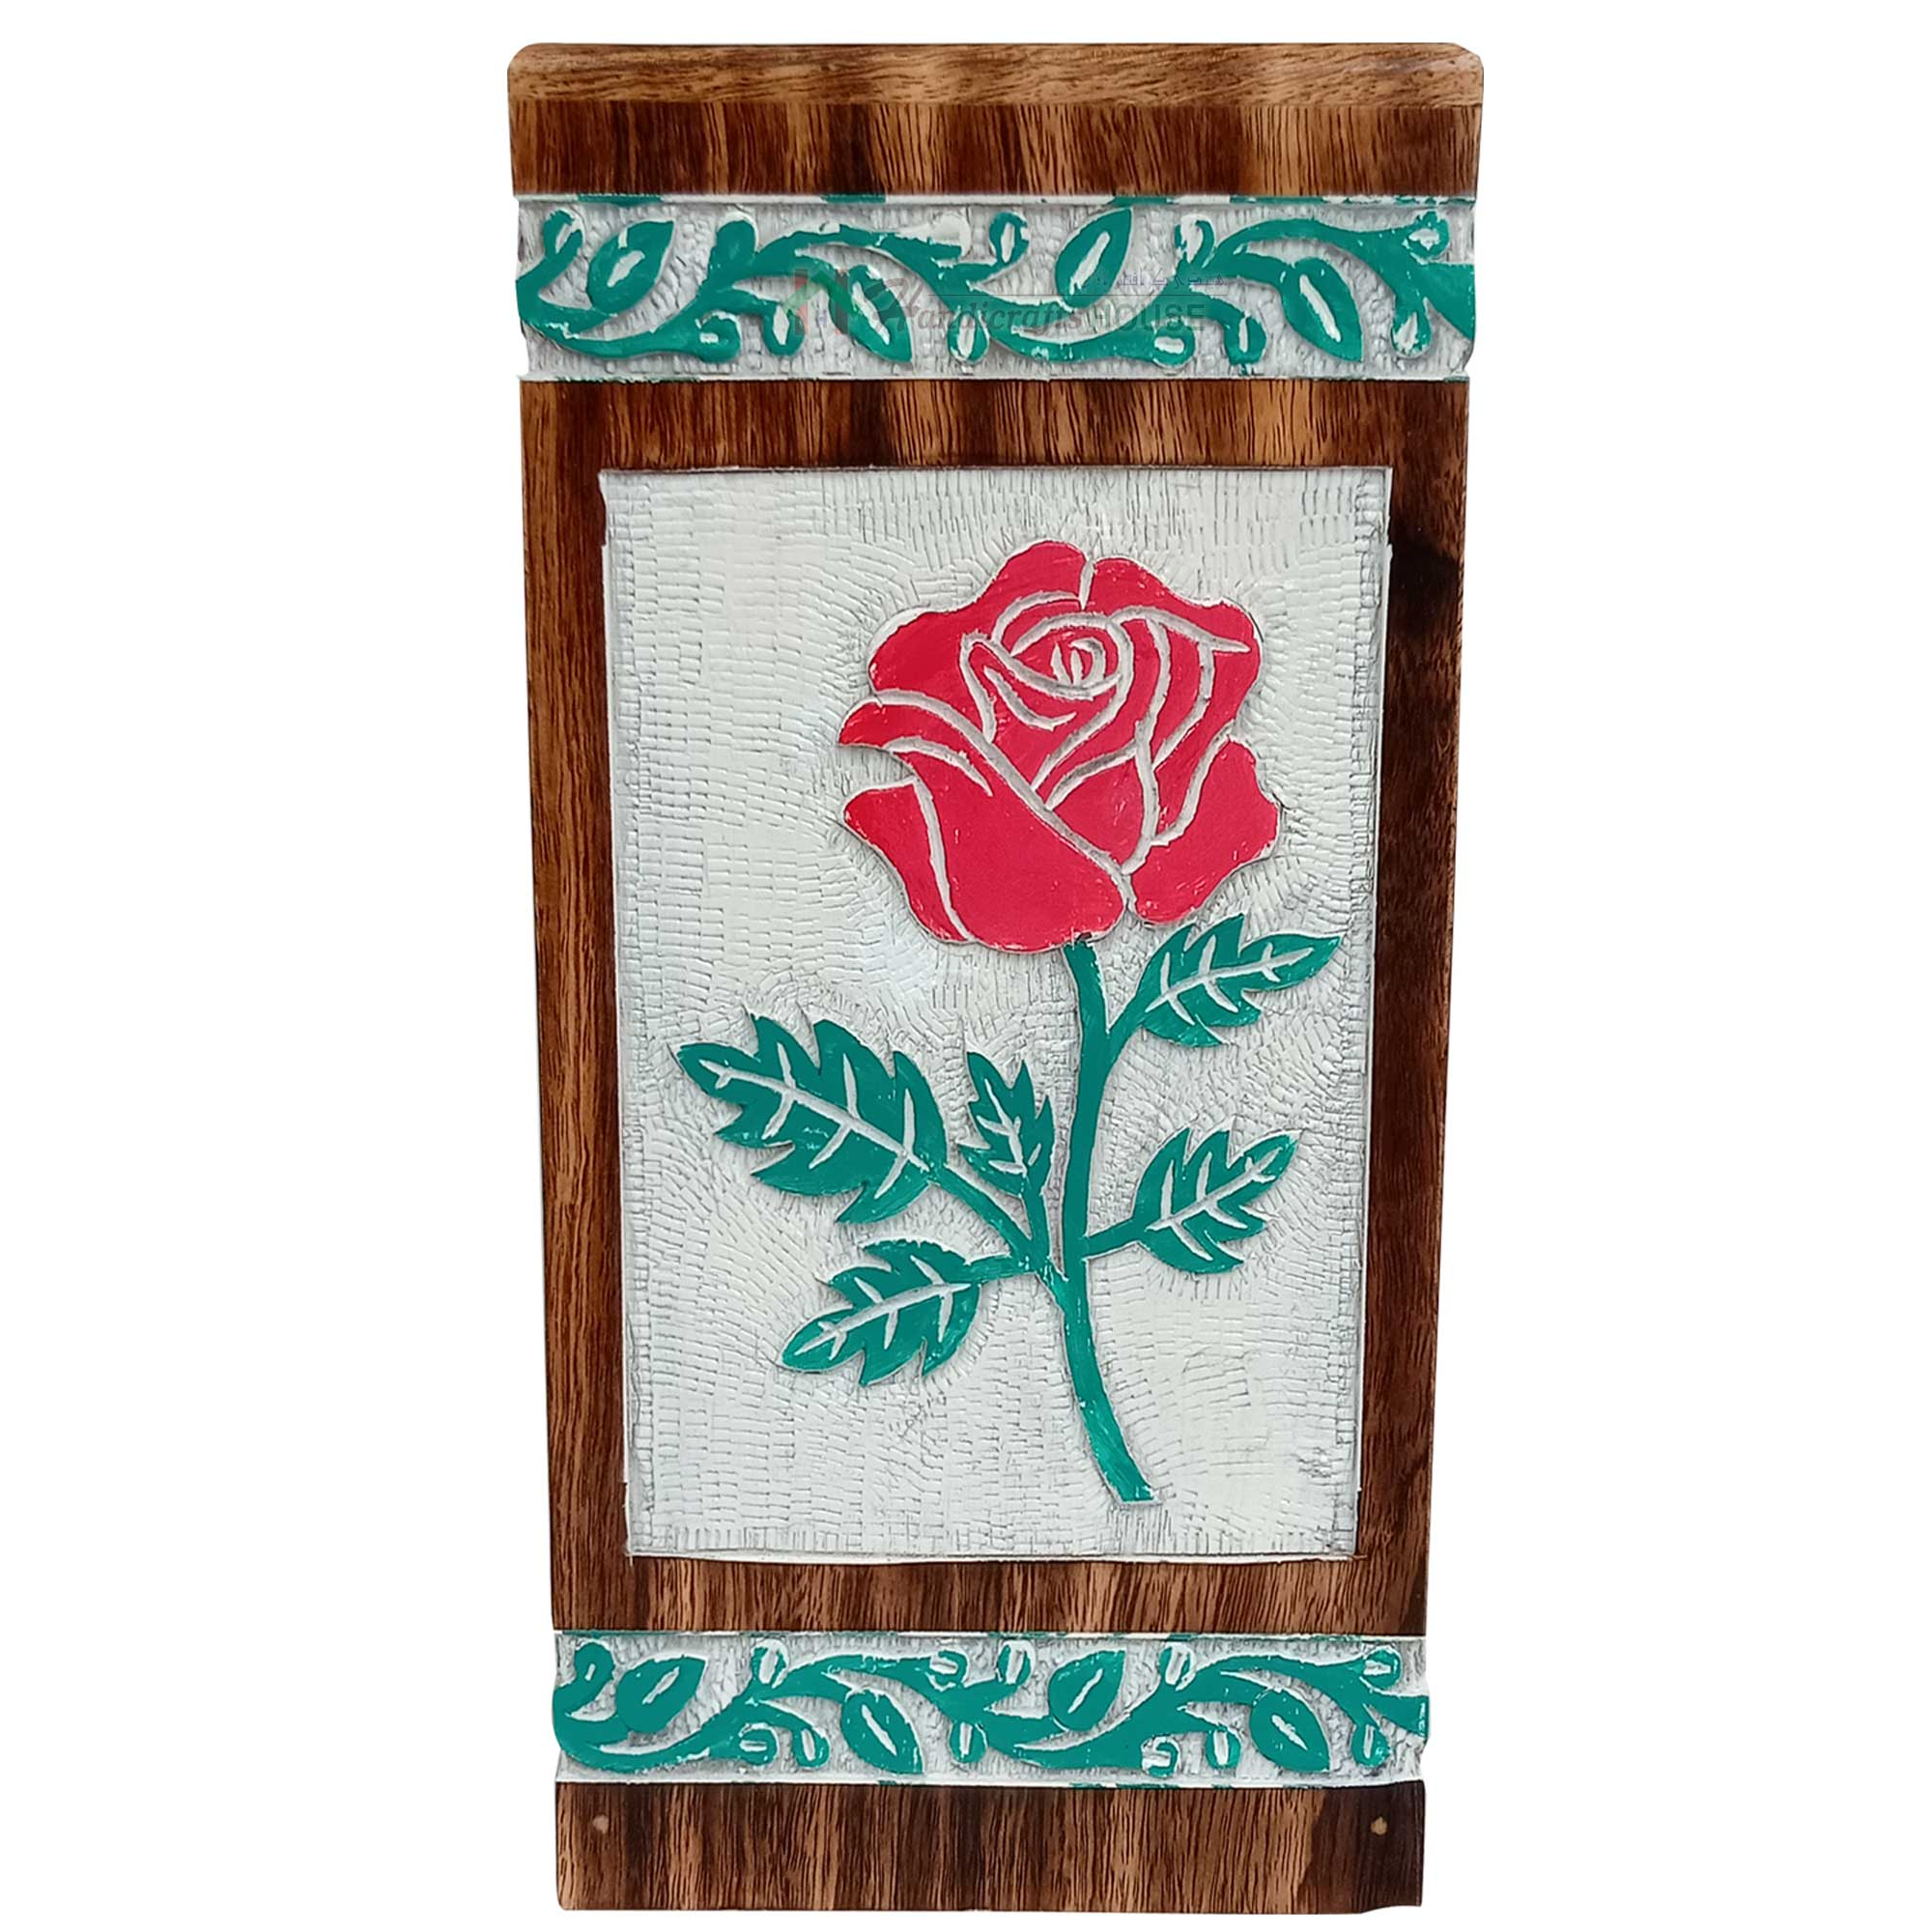 Hands Engraving Rose Flower Wooden Cremation Urns, Wood Funeral Urn for Human or Pet Ashes Adult - Hardwood Memorial Large Box in White, Green and Red Color